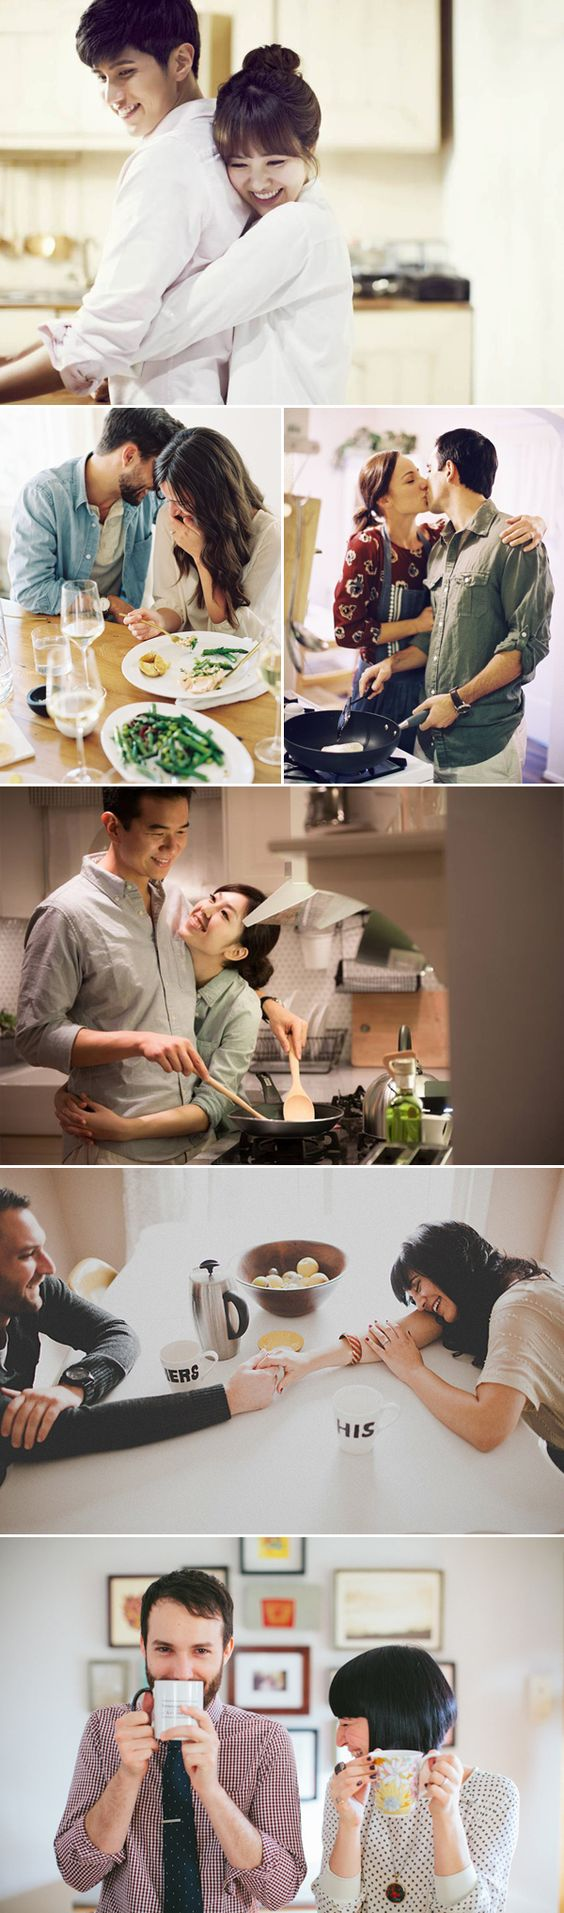 32 Sweet Home Engagement Photo Ideas for Couples - Cooking & Dining!: